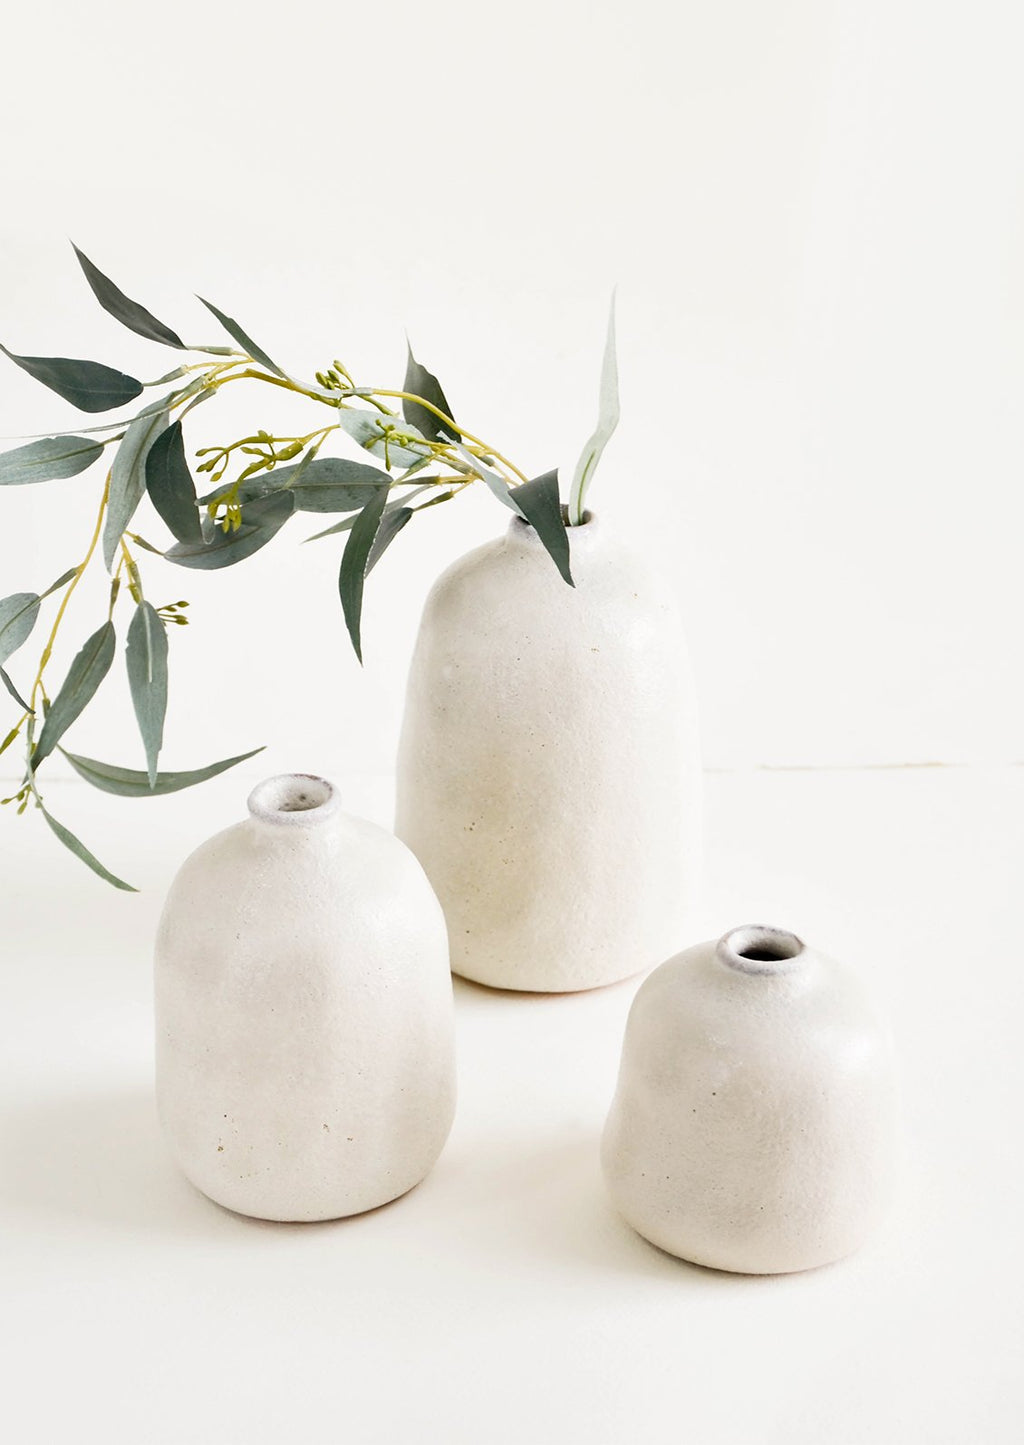 Small / Pumice: Group shot of textured ceramic bud vases in pumice grey, styled with eucalyptus stem